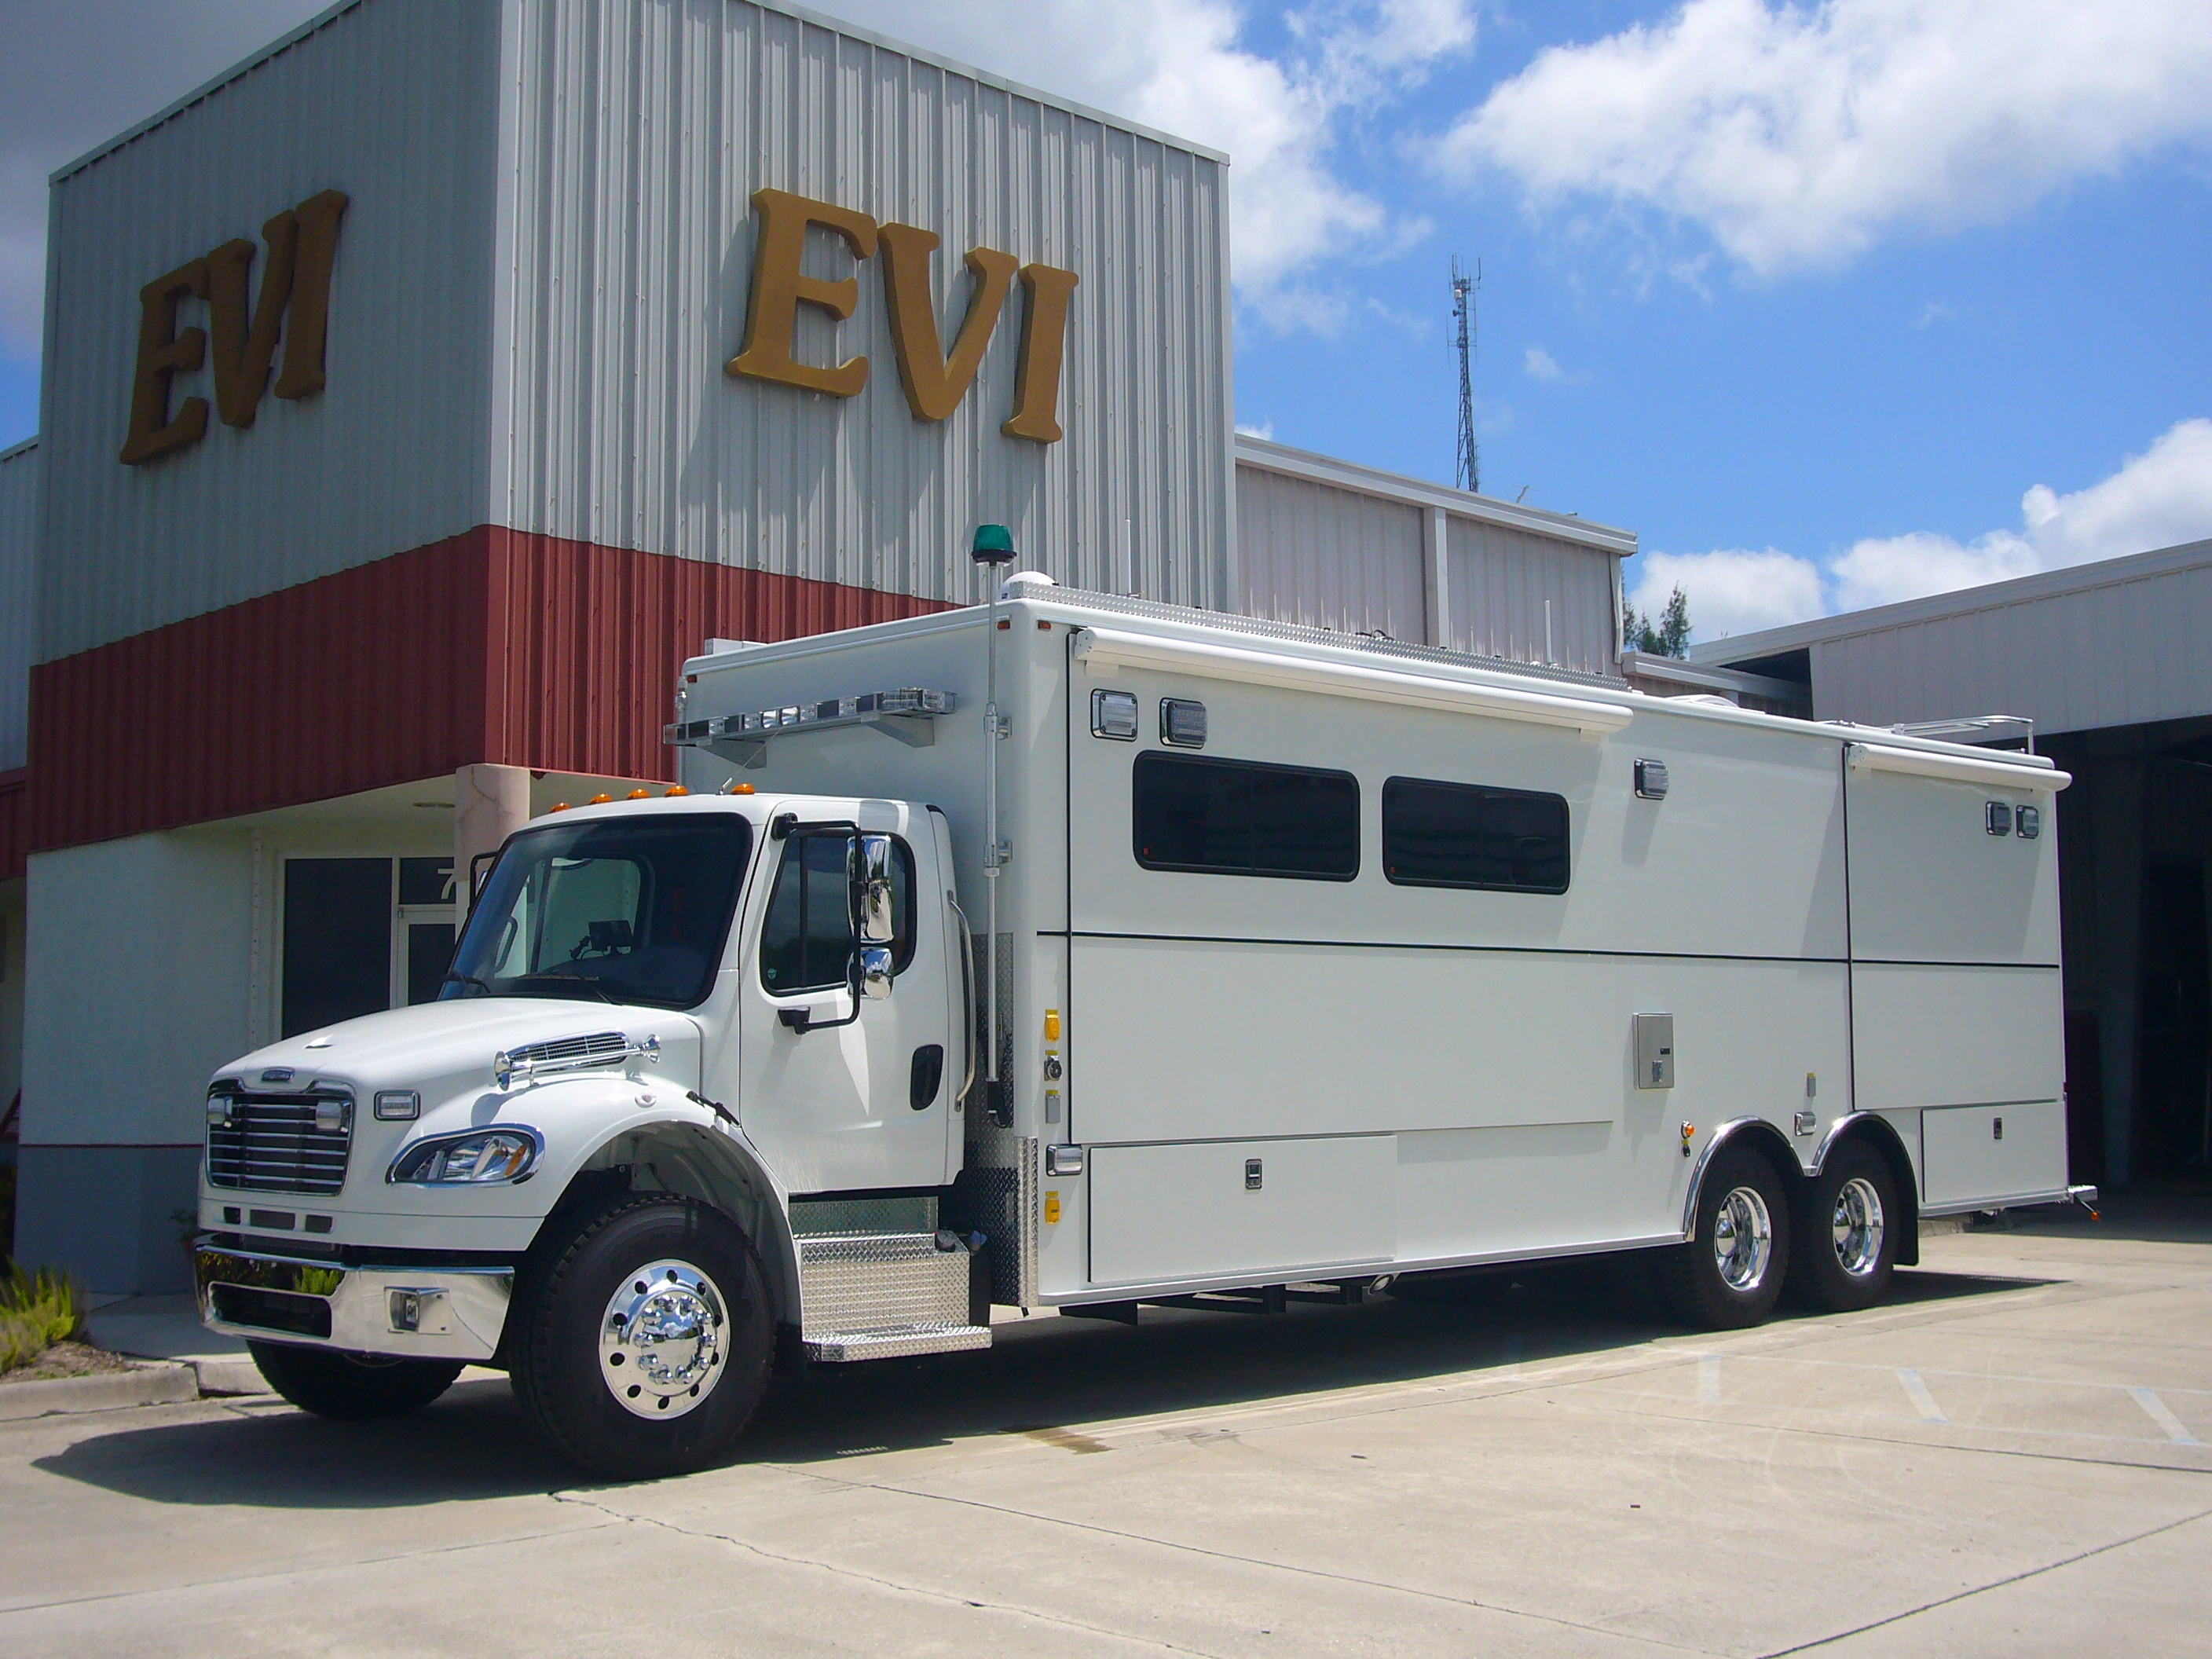 EVI Communications/Command Vehicle